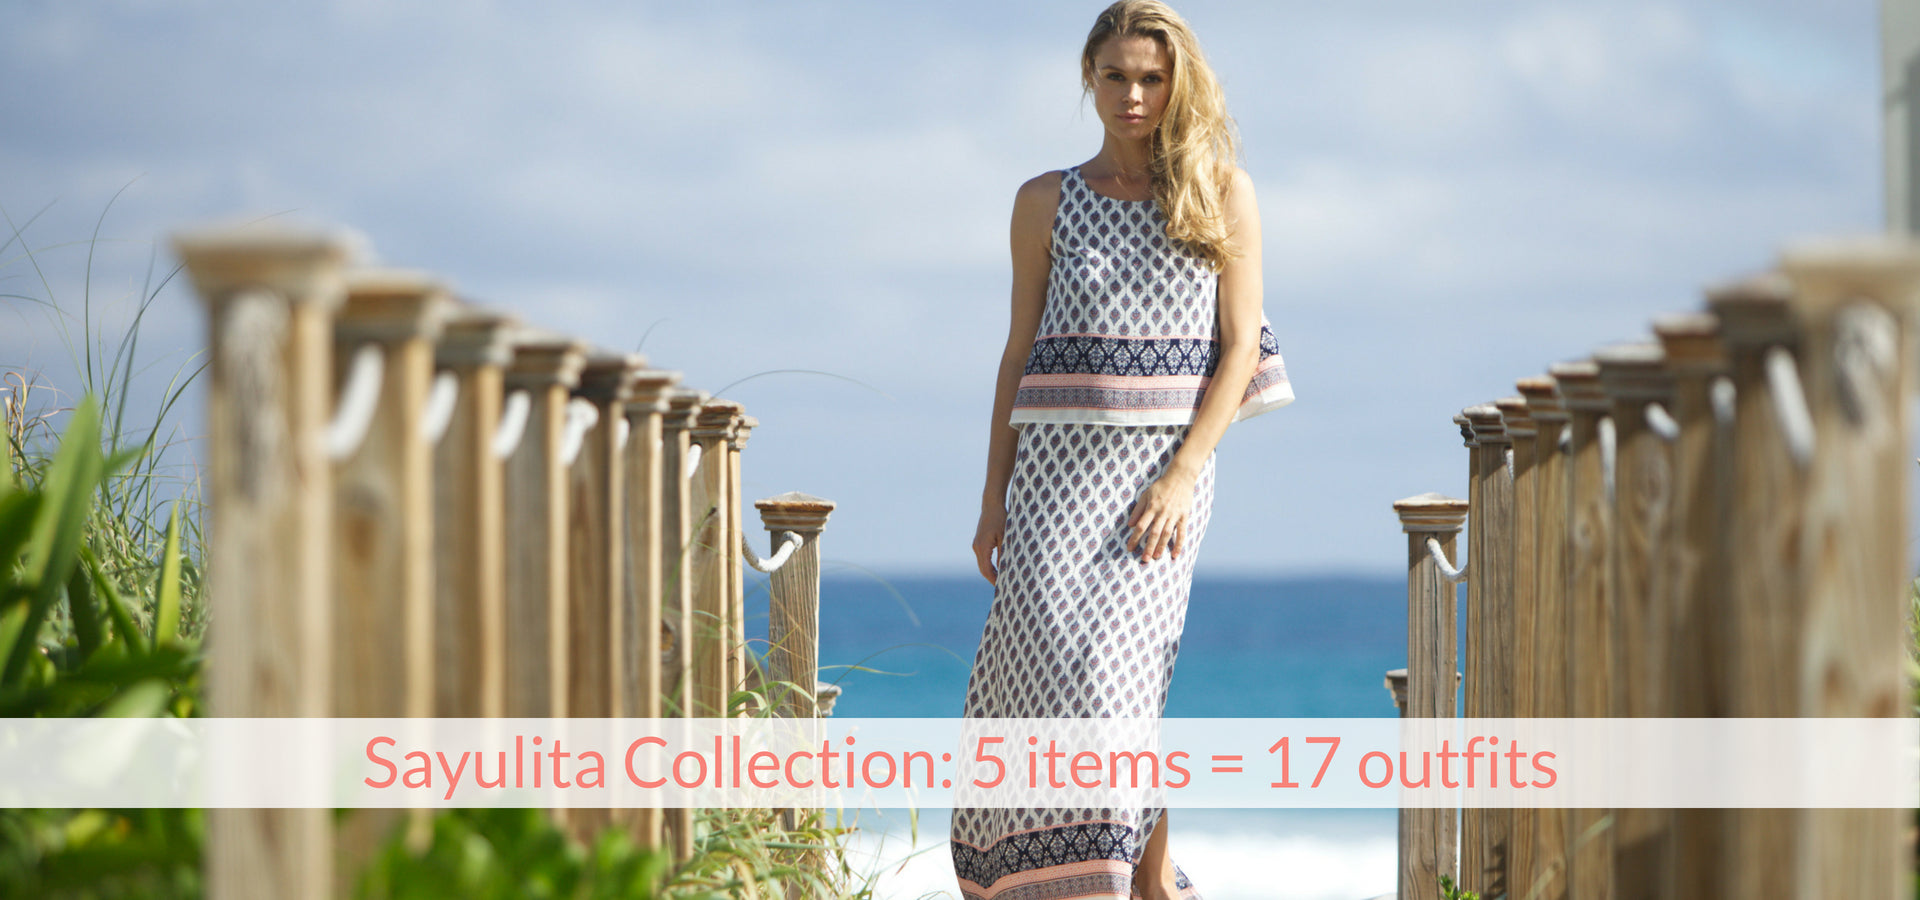 Sayulita collection: 5 items = 16 outfits